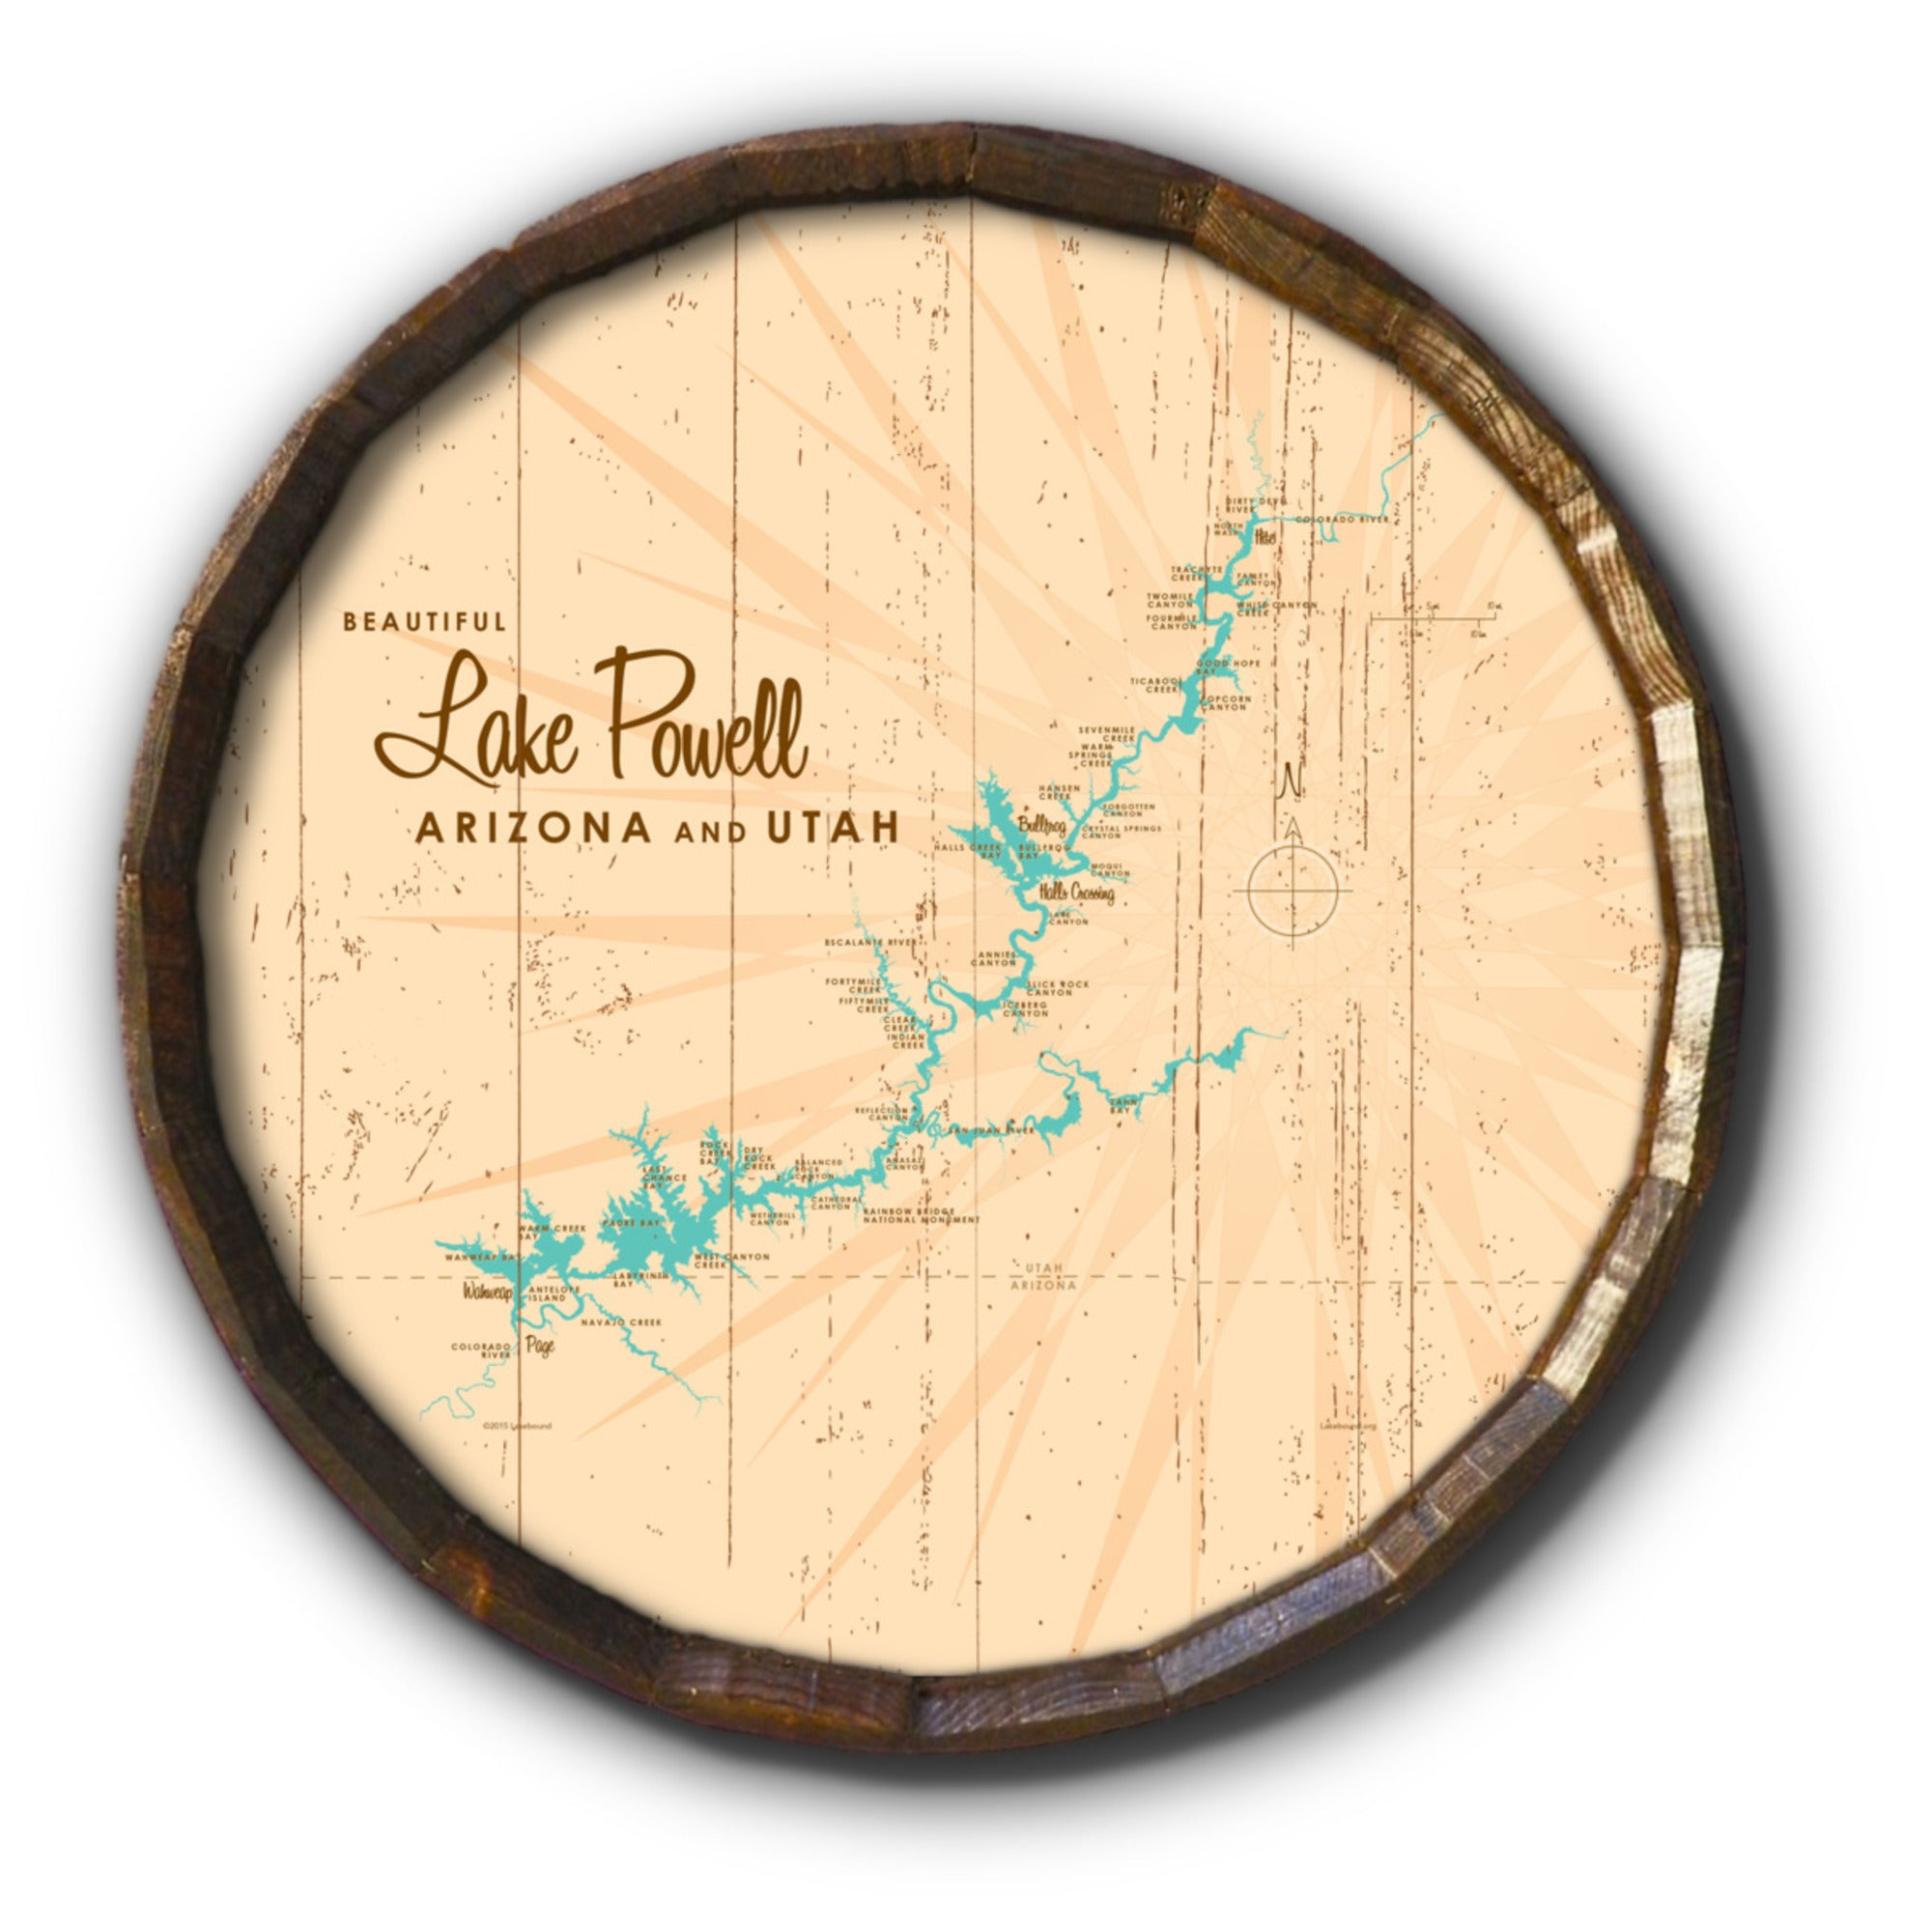 Lake Powell UT Arizona, Rustic Barrel End Map Art